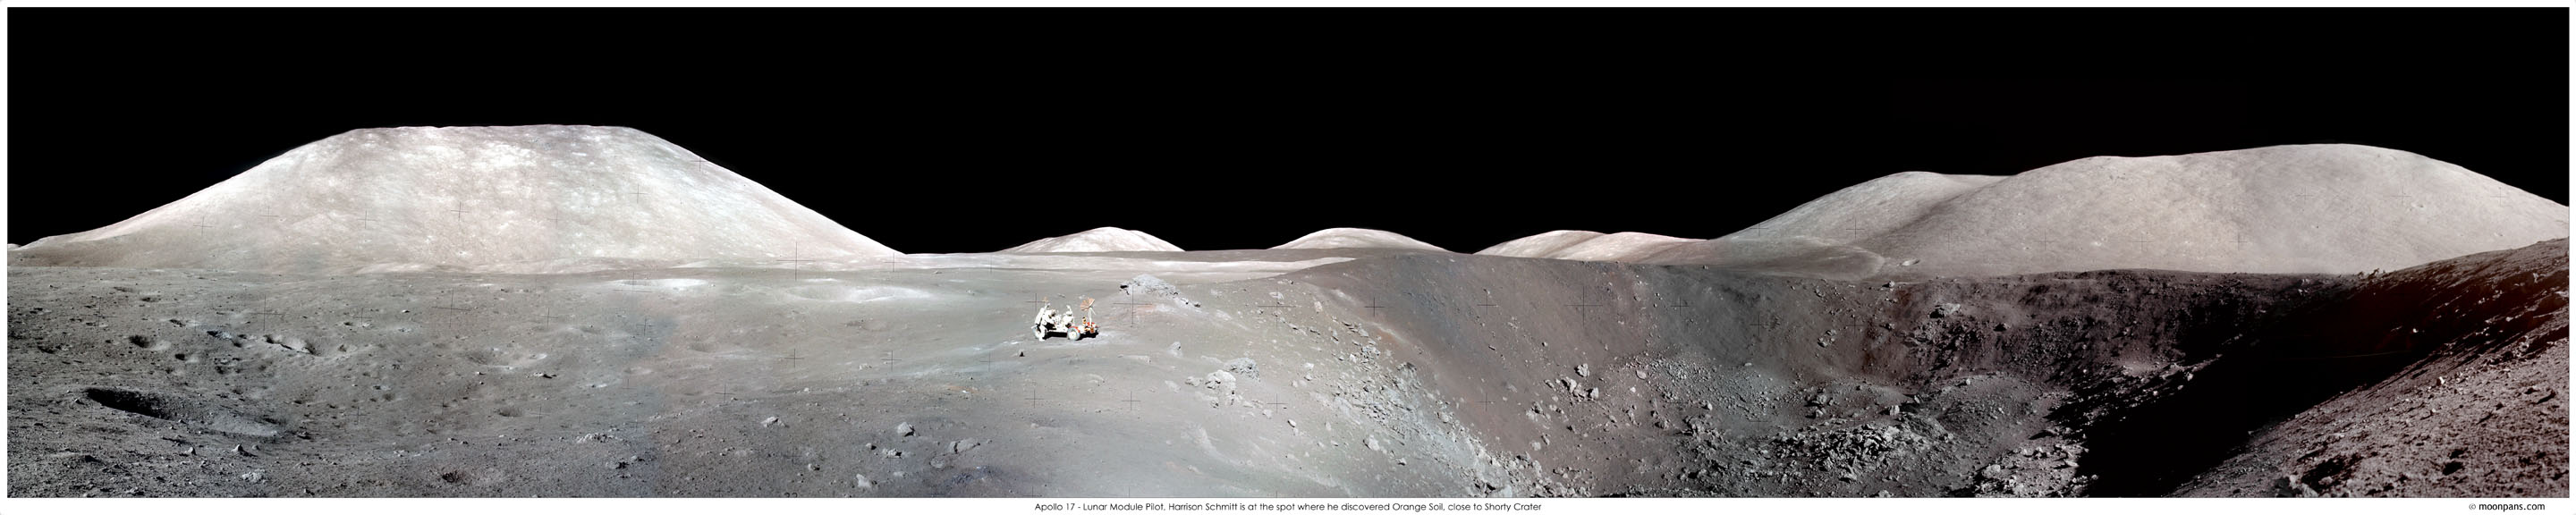 Apollo 17: Vista panorámica del cráter Shorty